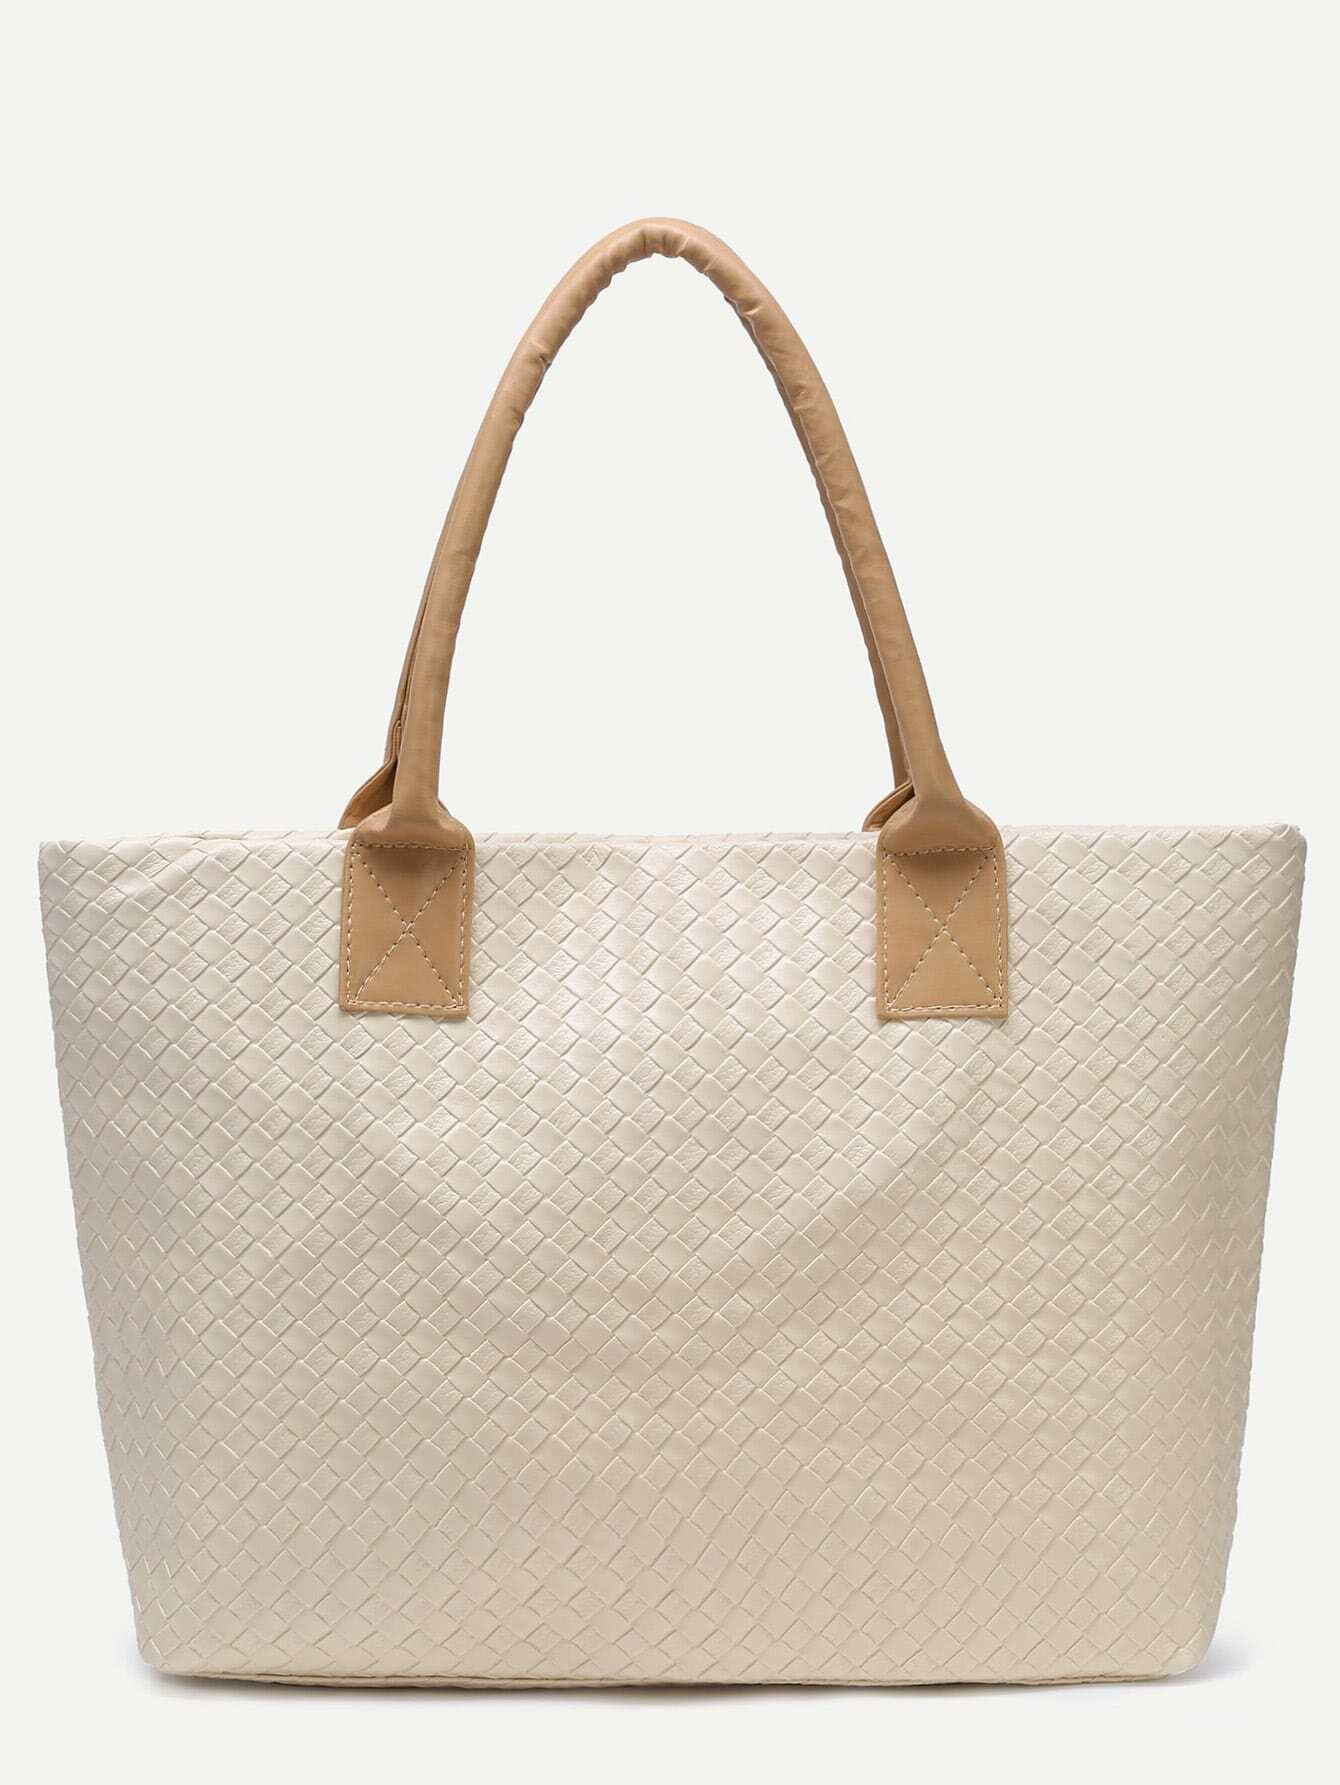 Beige Woven PU Tote Bag Image